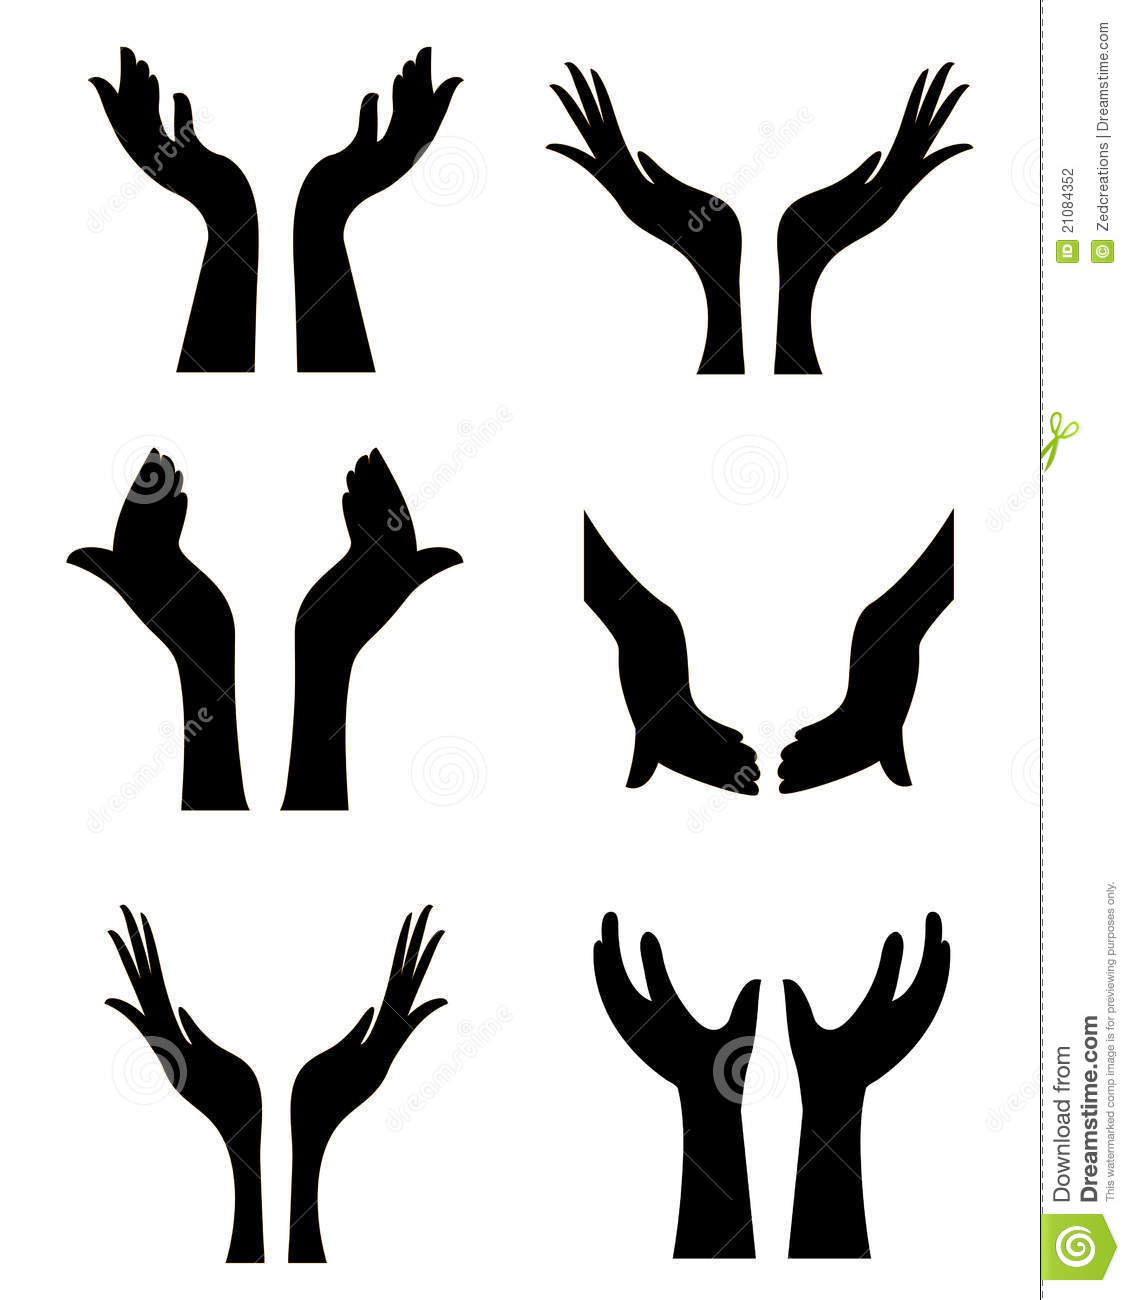 Open Hands Clipart Black And White Clipa-Open Hands Clipart Black And White Clipart Panda Free Clipart-12